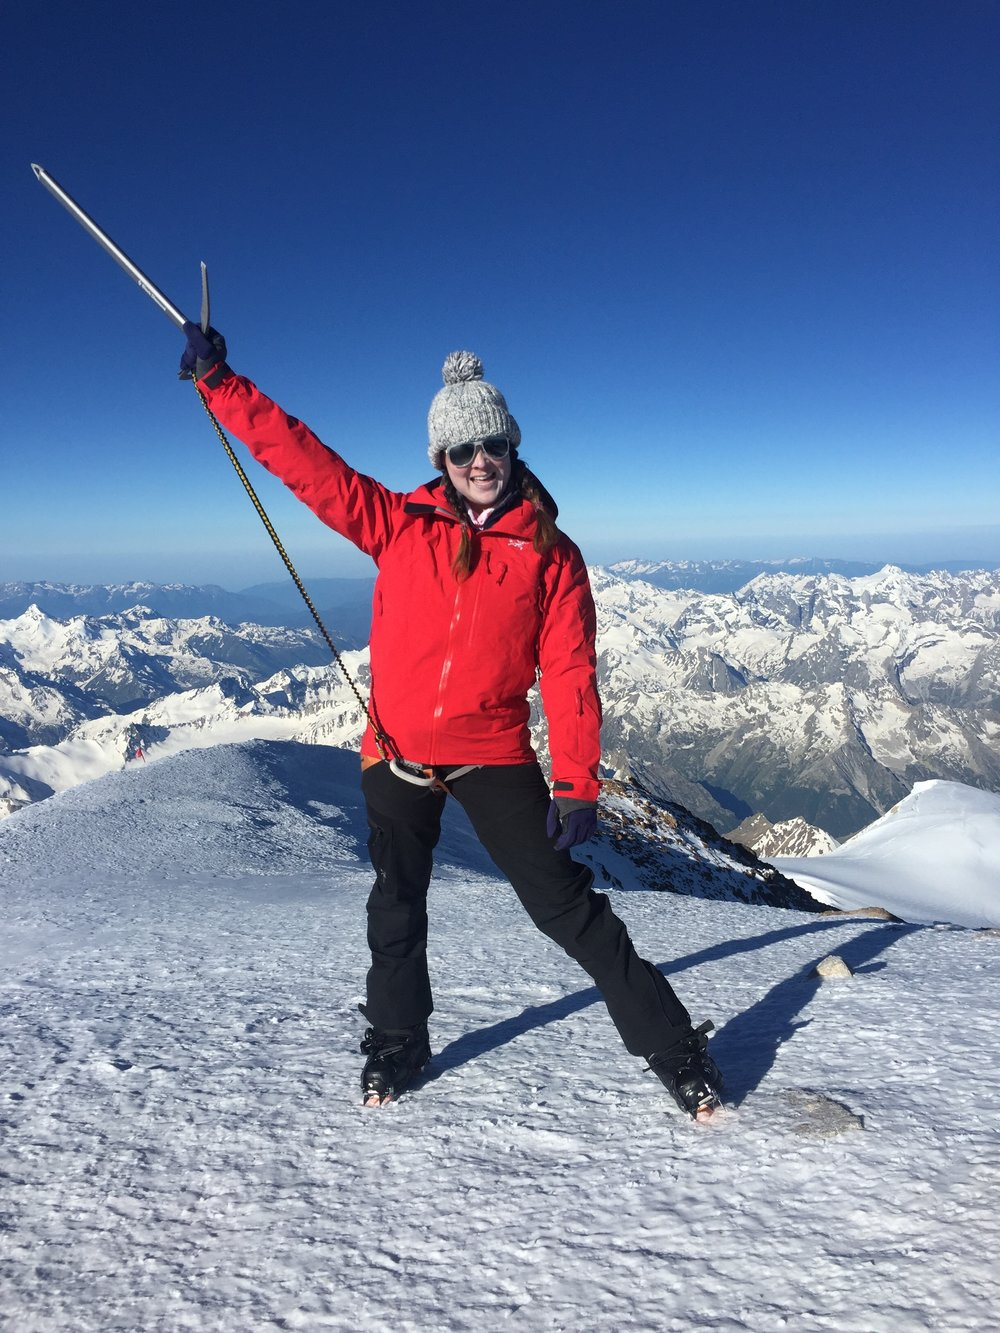 Elbrus - Location: RussiaHeight: 18,510 ft / 5,642 mSummit Date: July 2nd, 2017Route: SouthTrip Length: 7 daysCompany: Madison Mountaineering